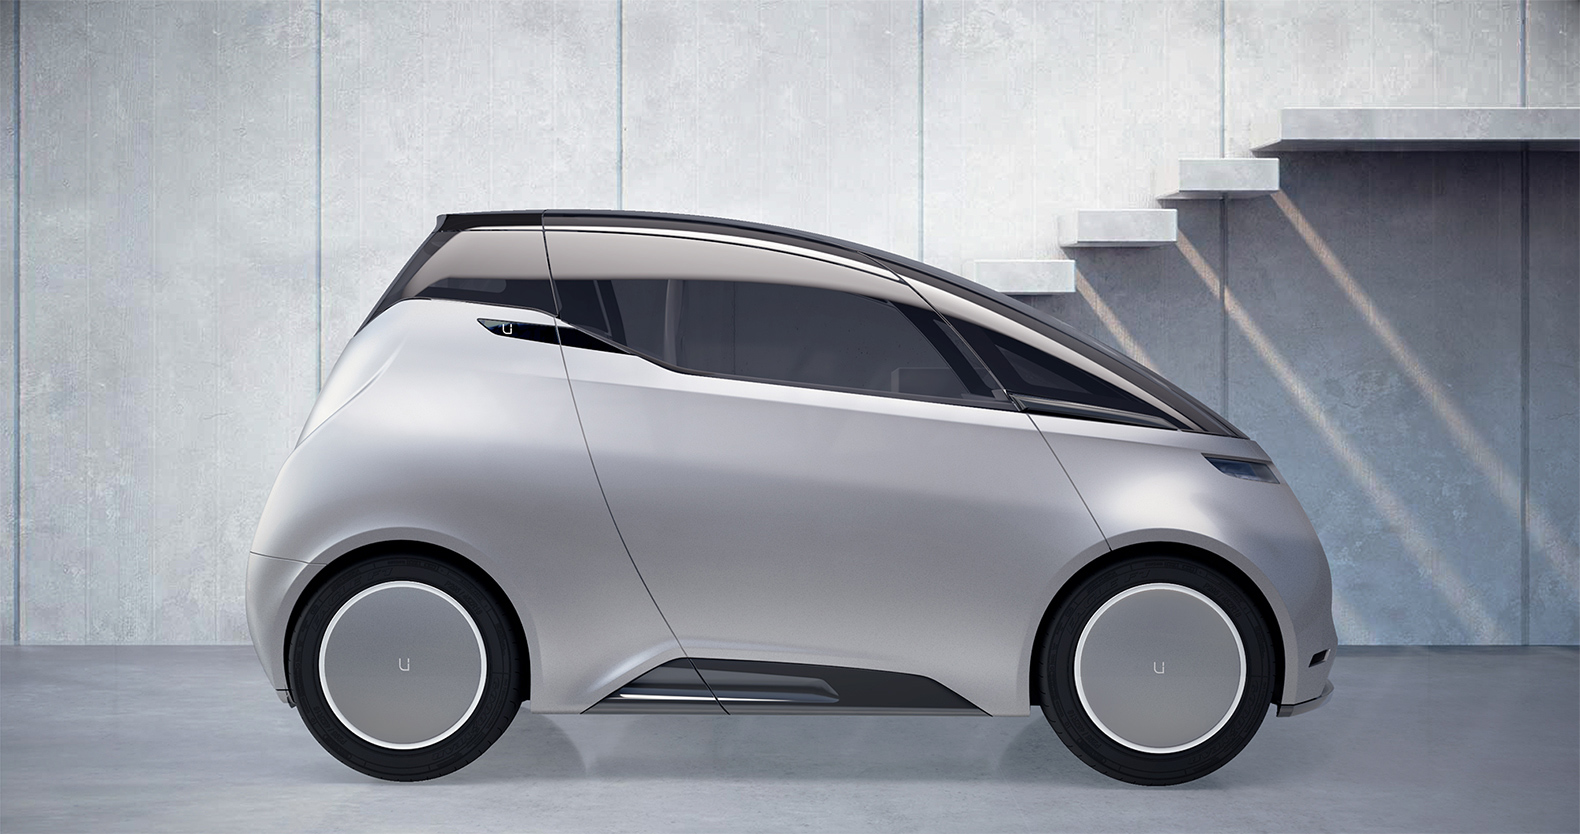 This Swedish electric car comes with 5 years of free electricity